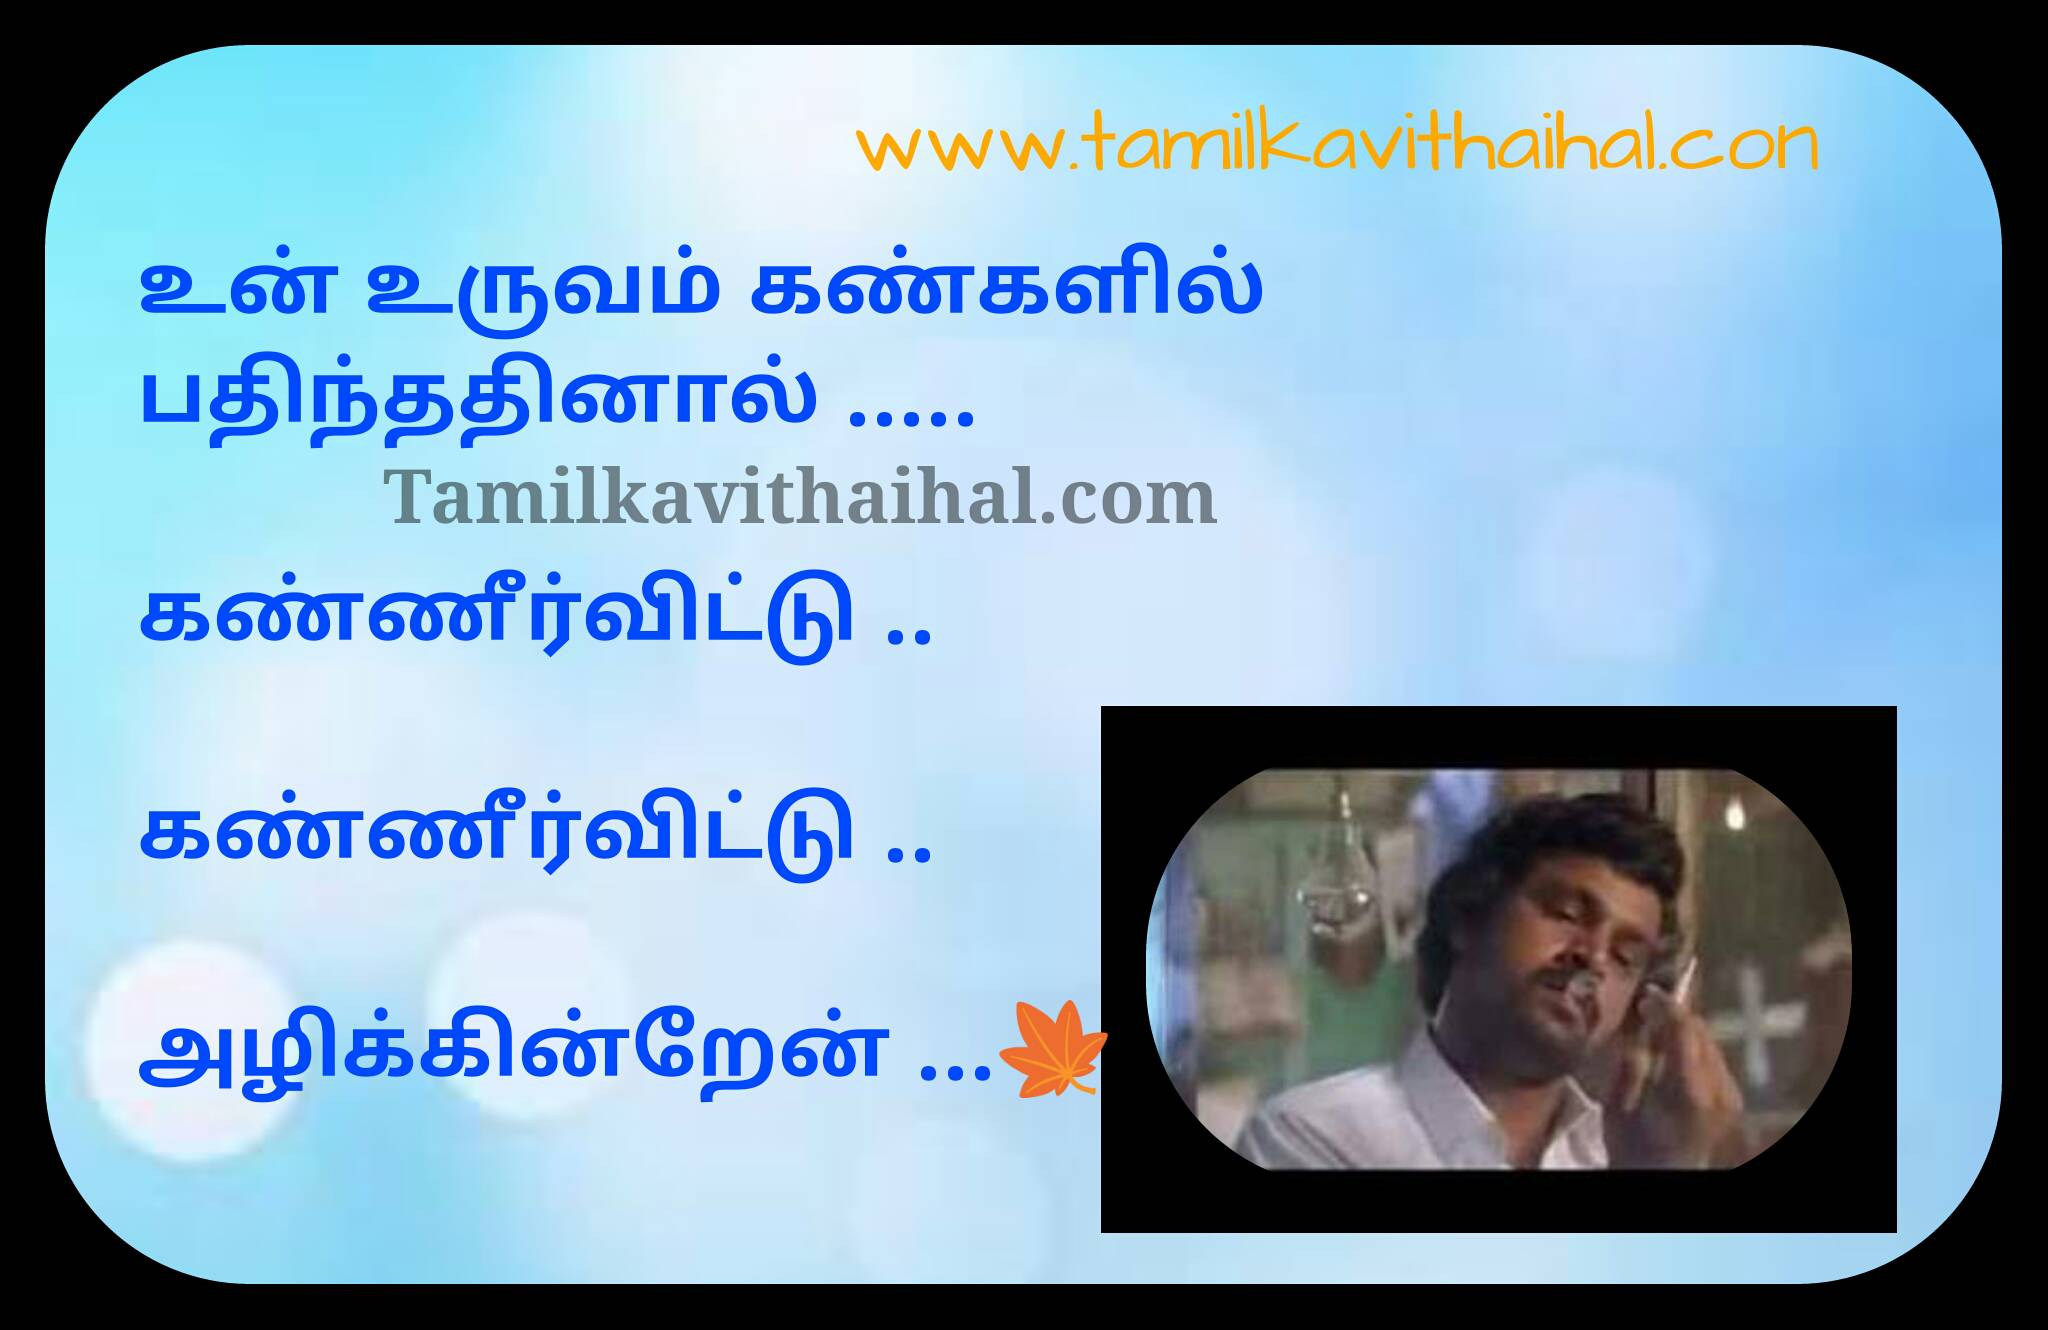 Naa autograph song download.